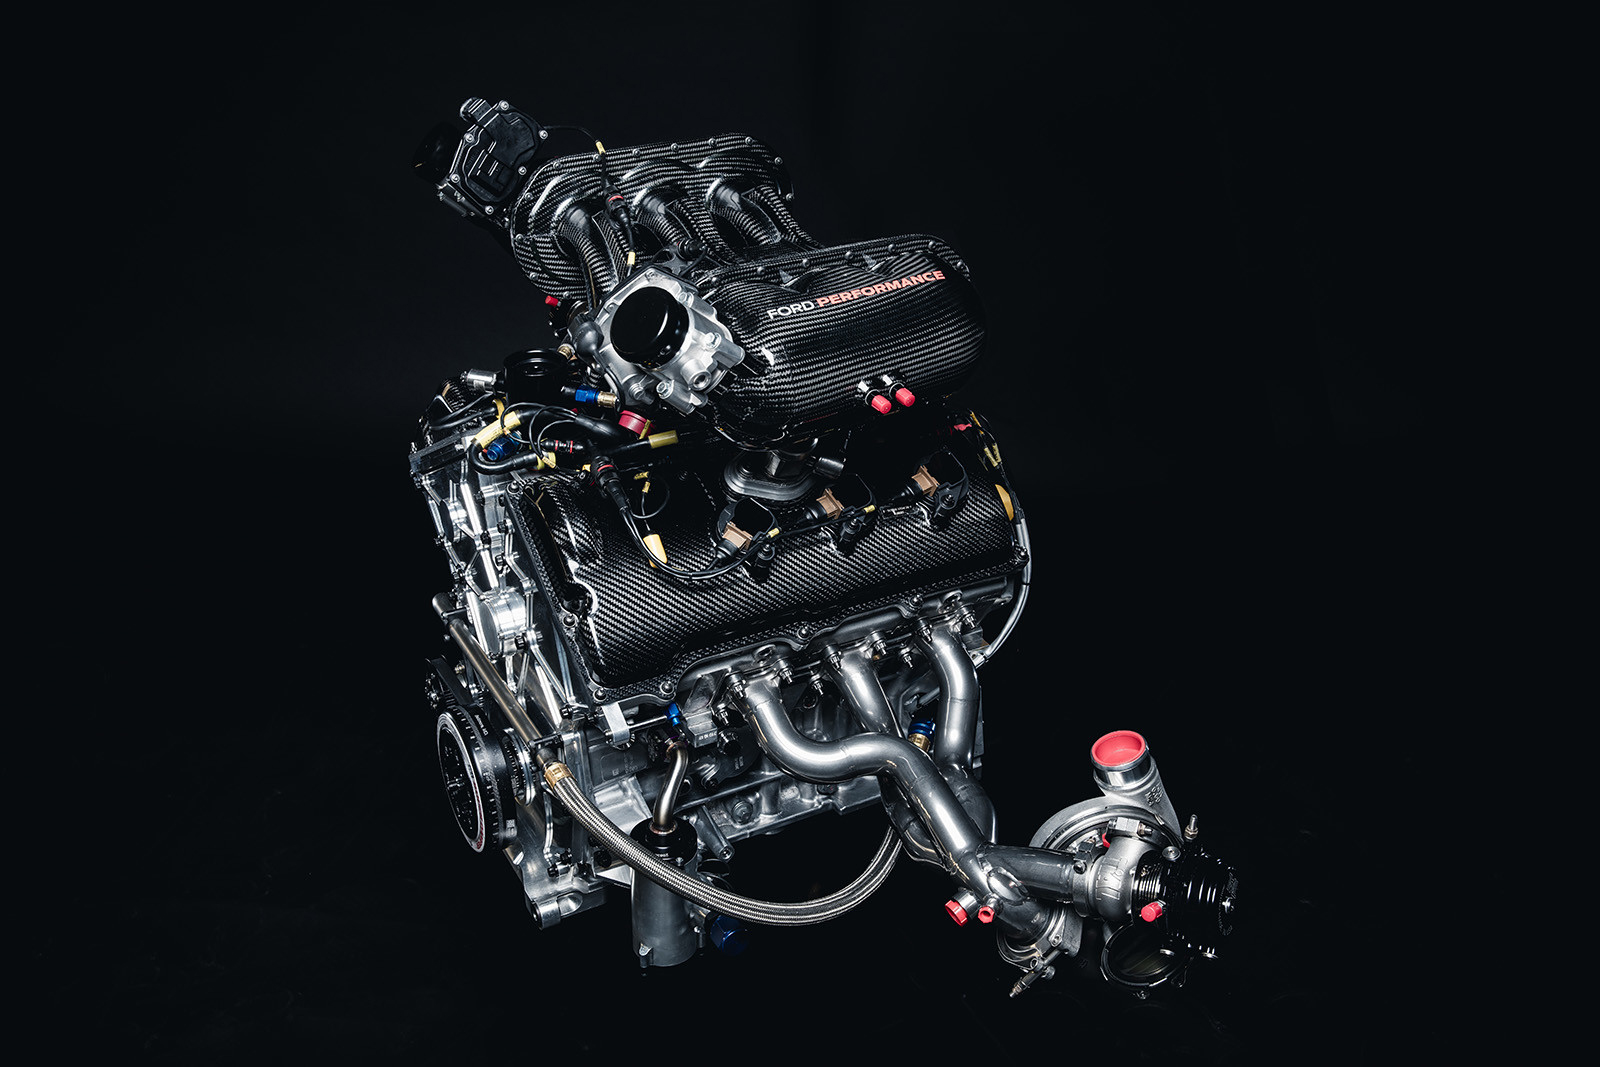 Ford Performance - Roush Yates - V6 - engine / moteur